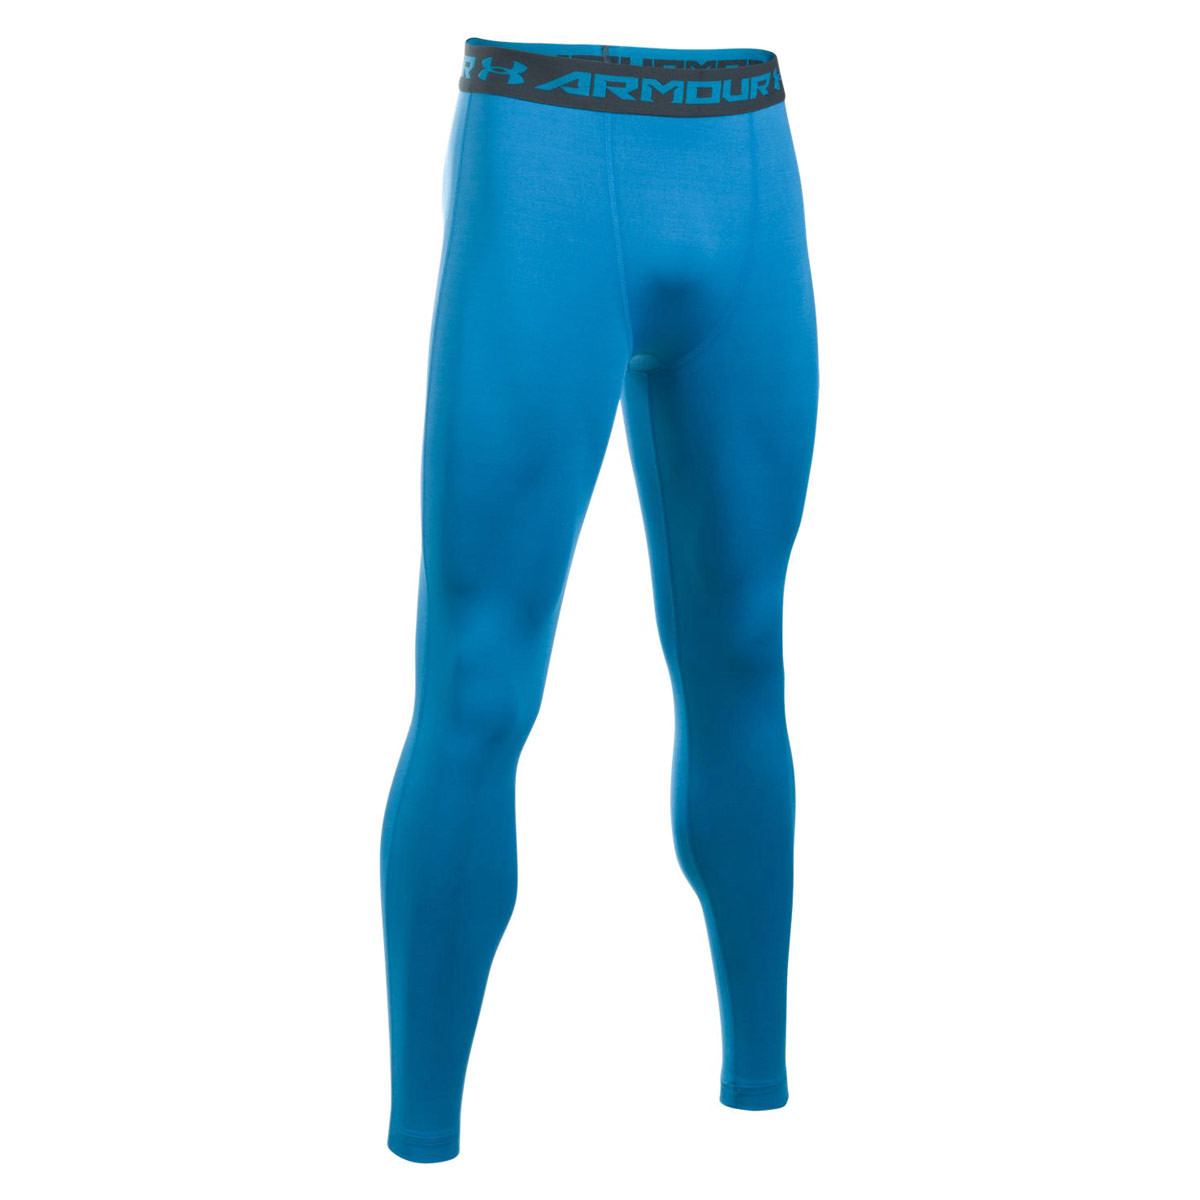 408458eb0d1ad6 Under Armour HG Armour Compression Leggings - Running trousers for Men -  Blue | 21RUN